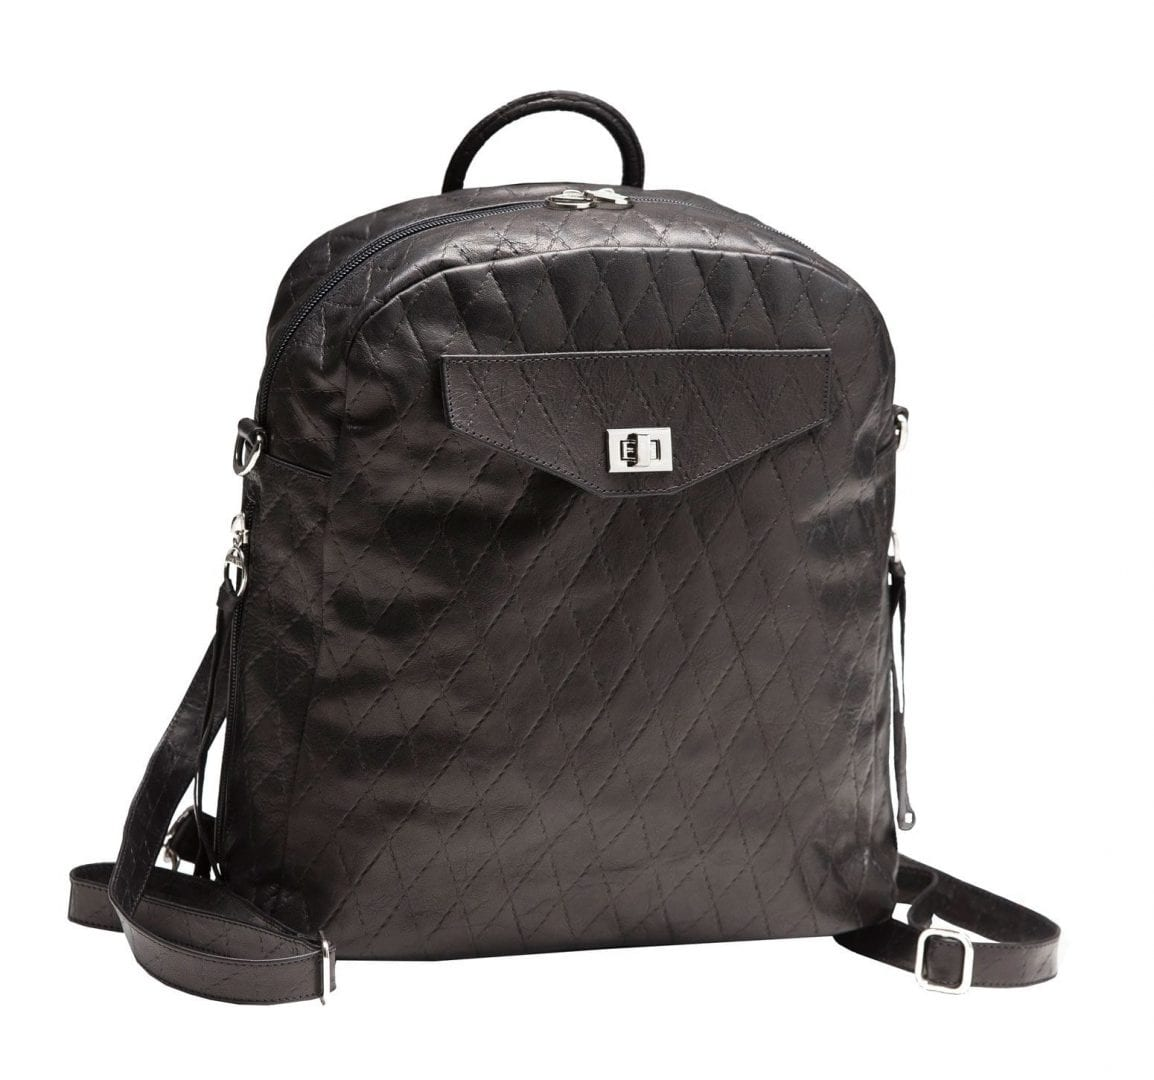 Small Black Leather Backpack | 3-Way Bag